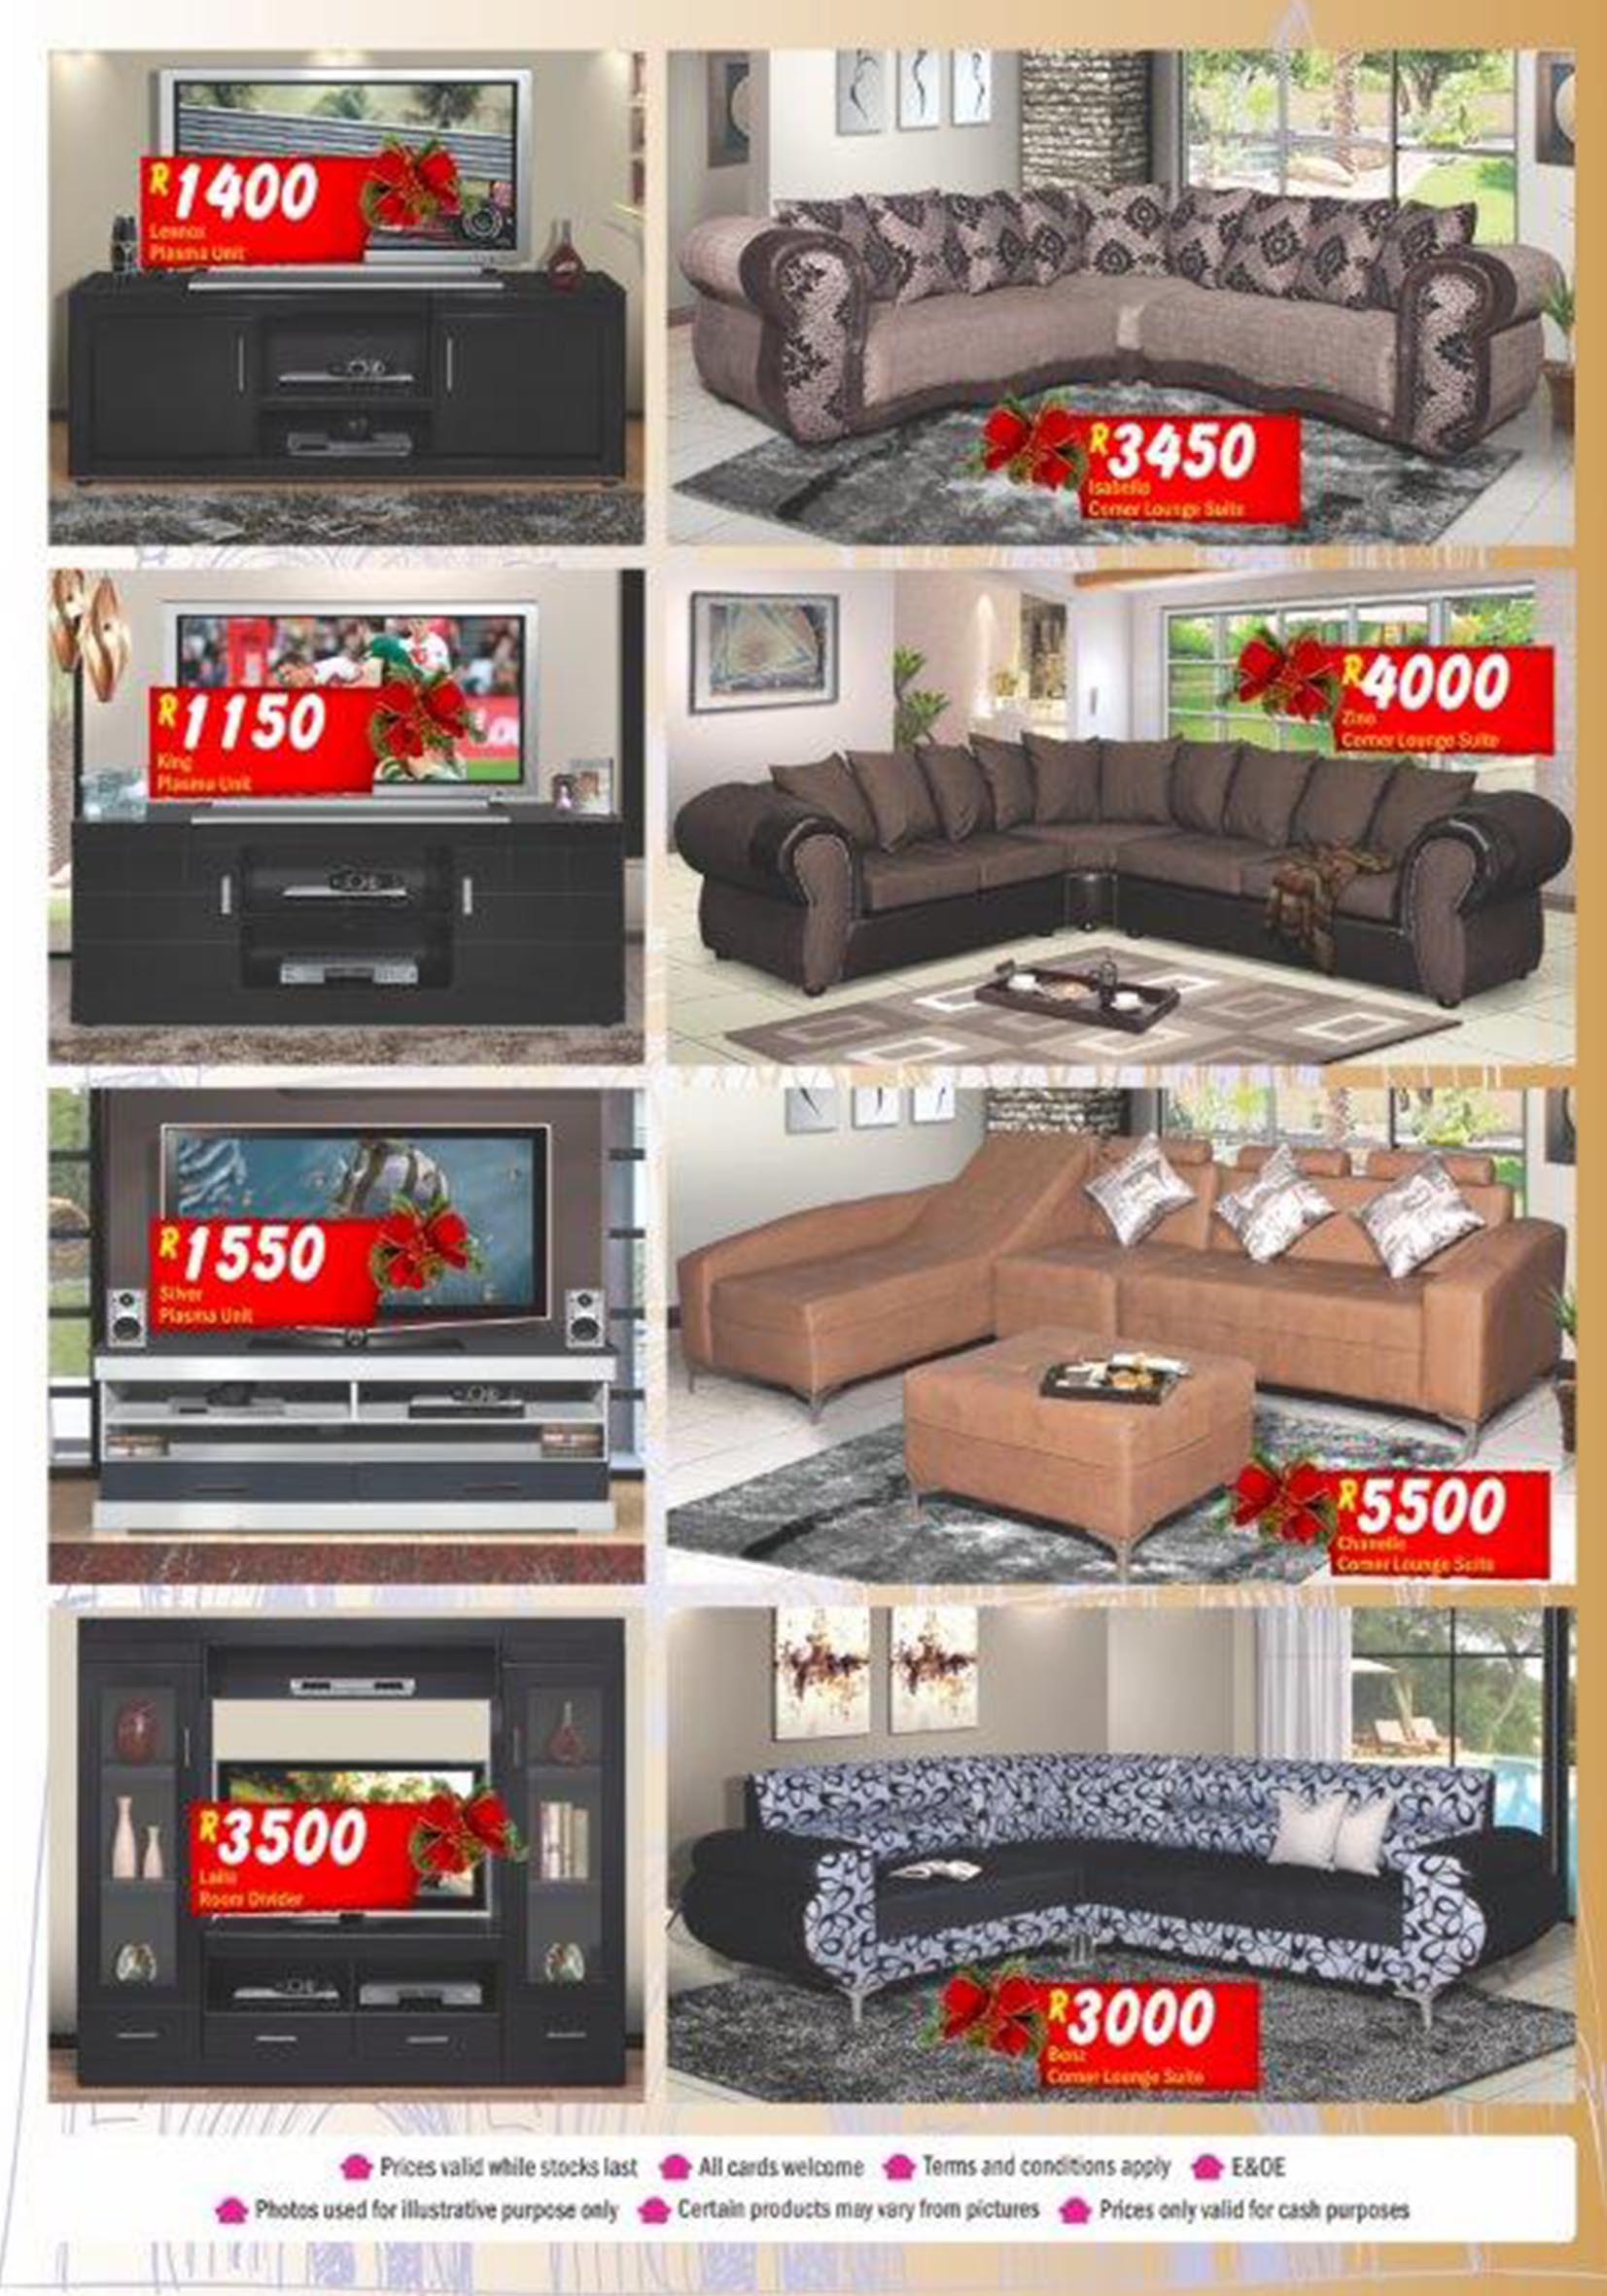 Promotion Akhona Furnishers